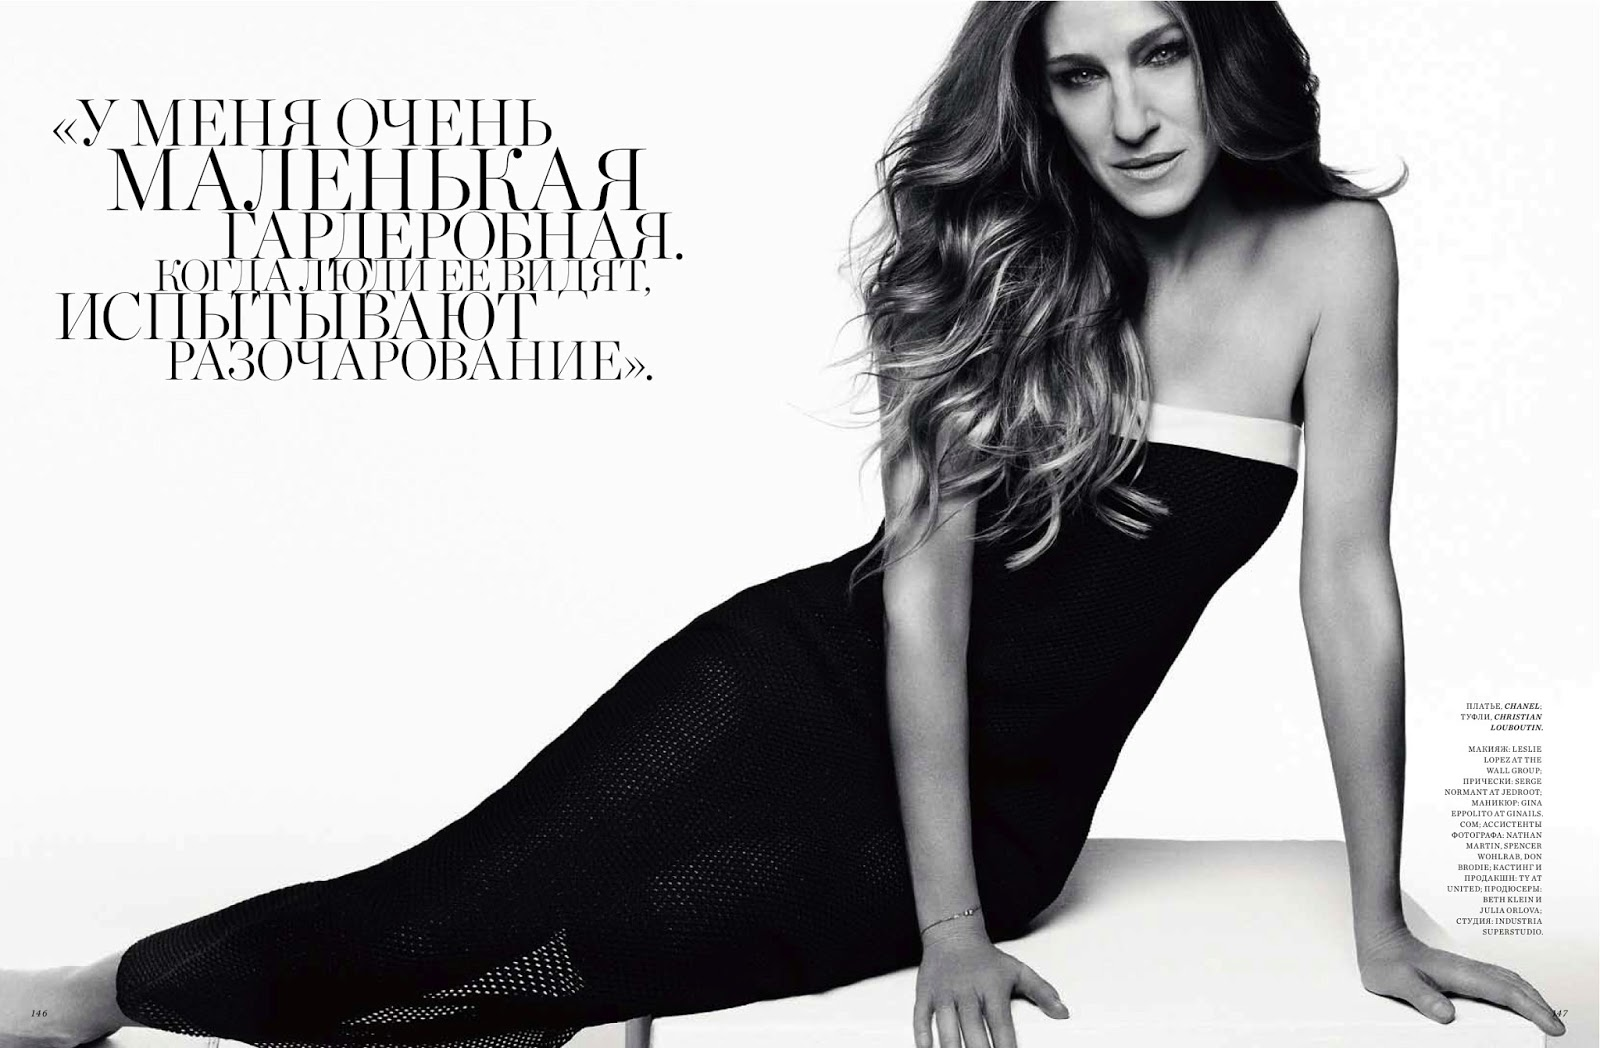 sarah jessica parker Sarah Jessica Parker Poses in Harpers Bazaar Russia June 2013 Cover Shoot by Simon Upton